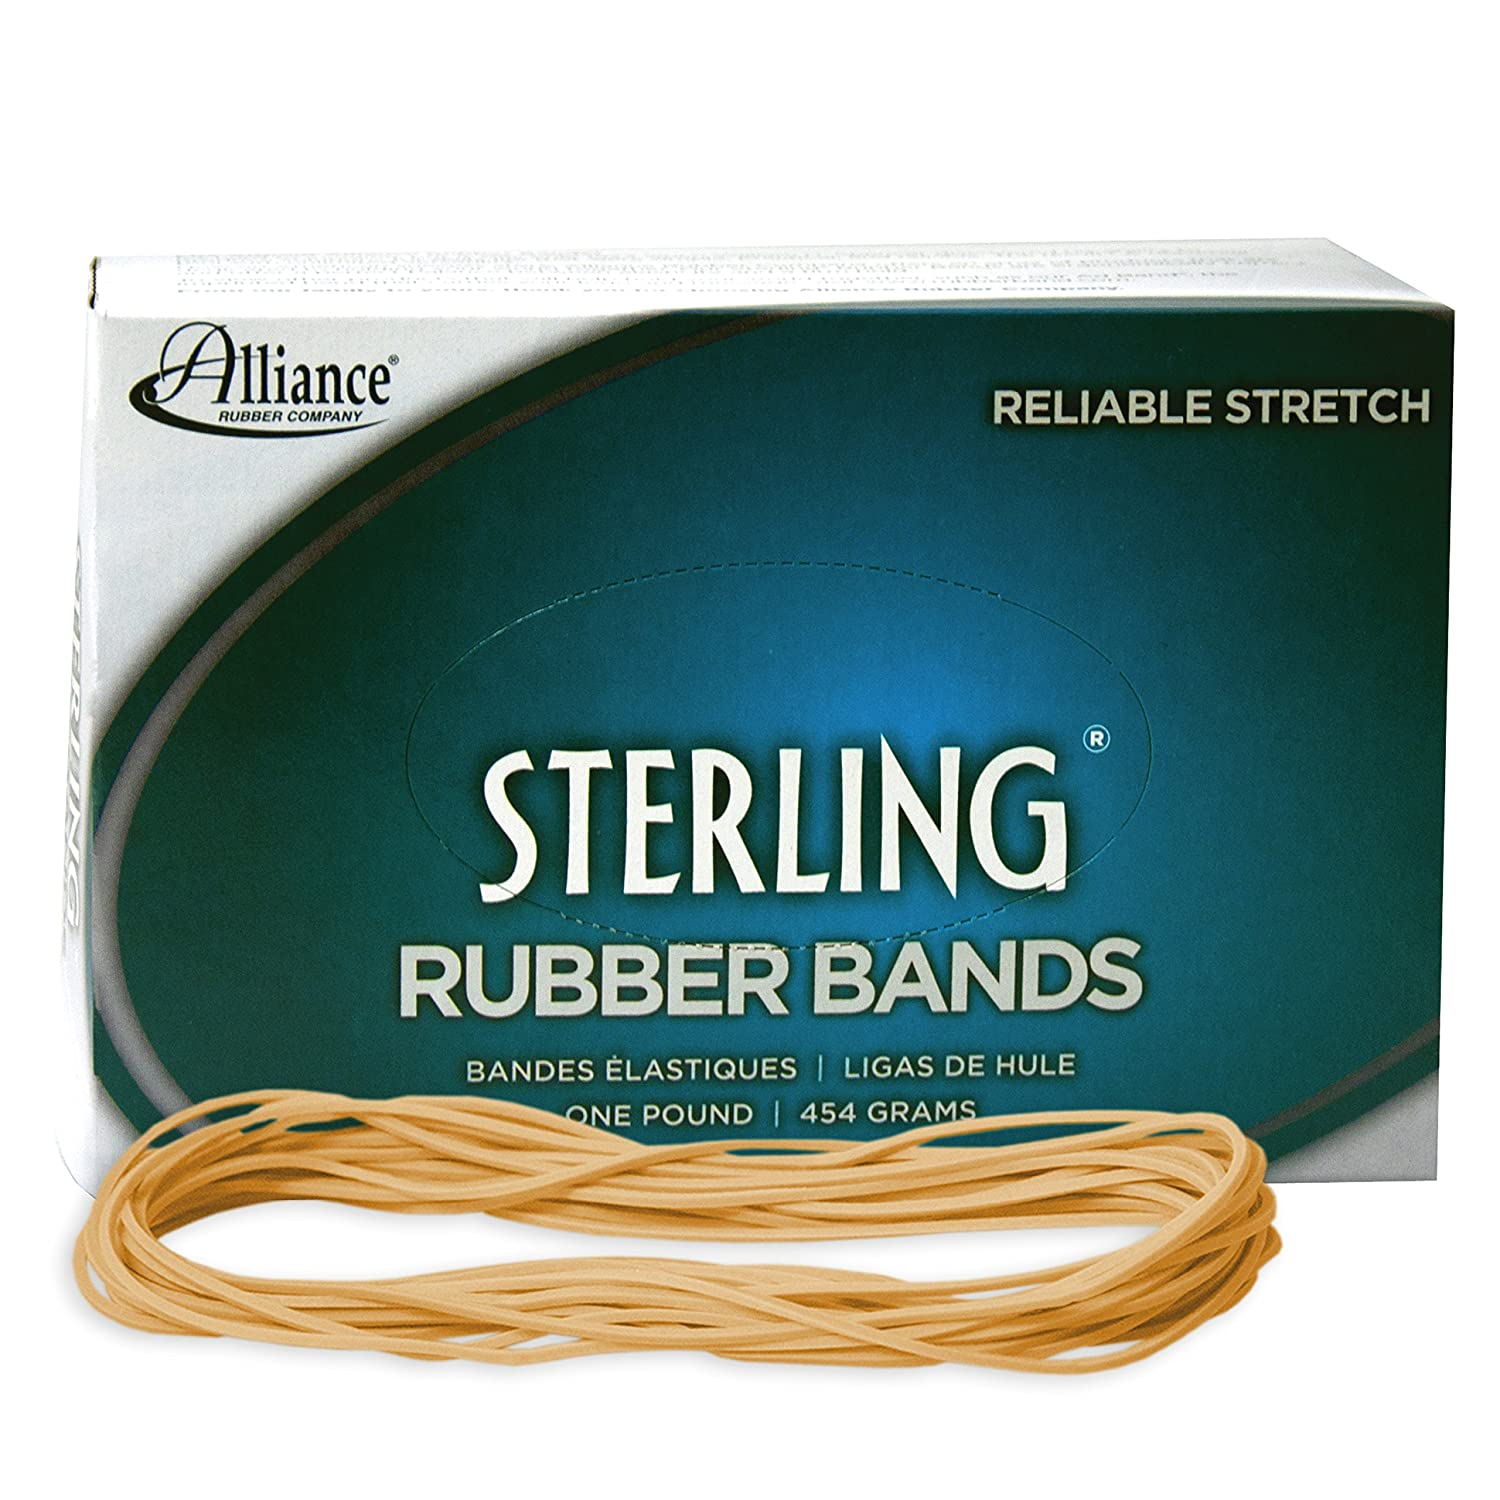 Alliance Rubber 25075 Sterling Rubber Bands Size #107, 1 lb Box Contains Approx. 50 Bands (7' x 5/8', Natural Crepe) 1 lb Box Contains Approx. 50 Bands (7 x 5/8 #N/A!